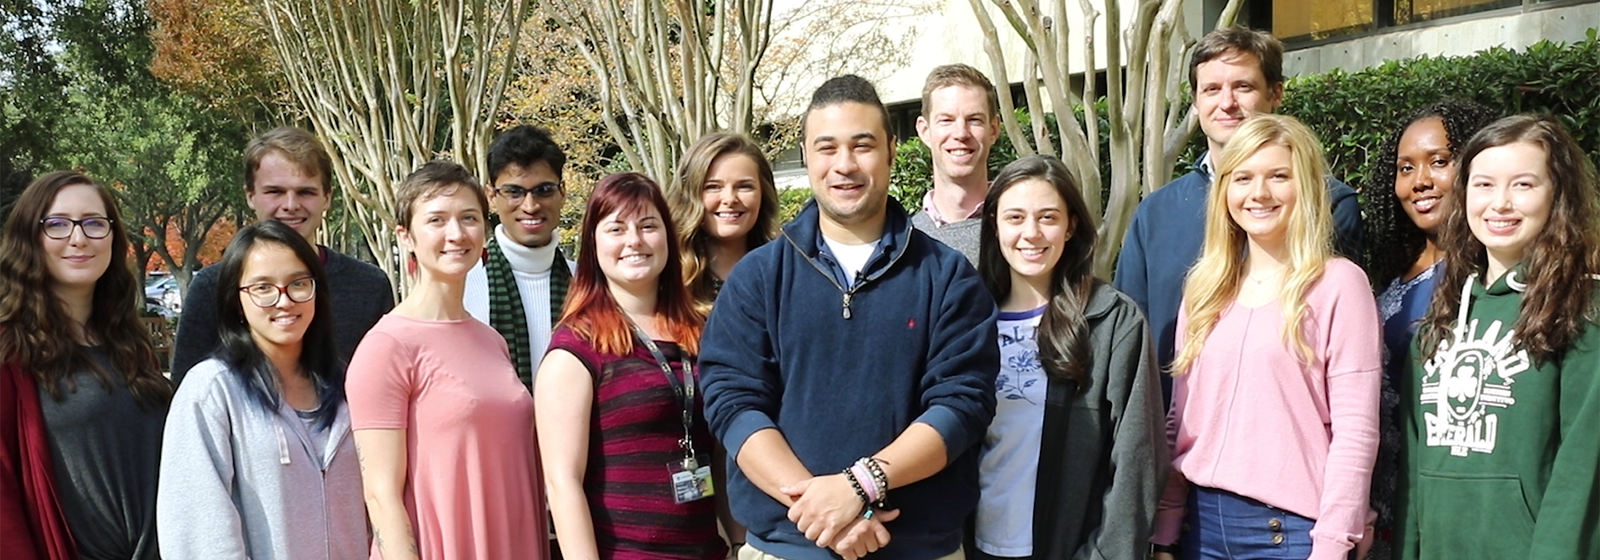 Group photo of graduate student council members